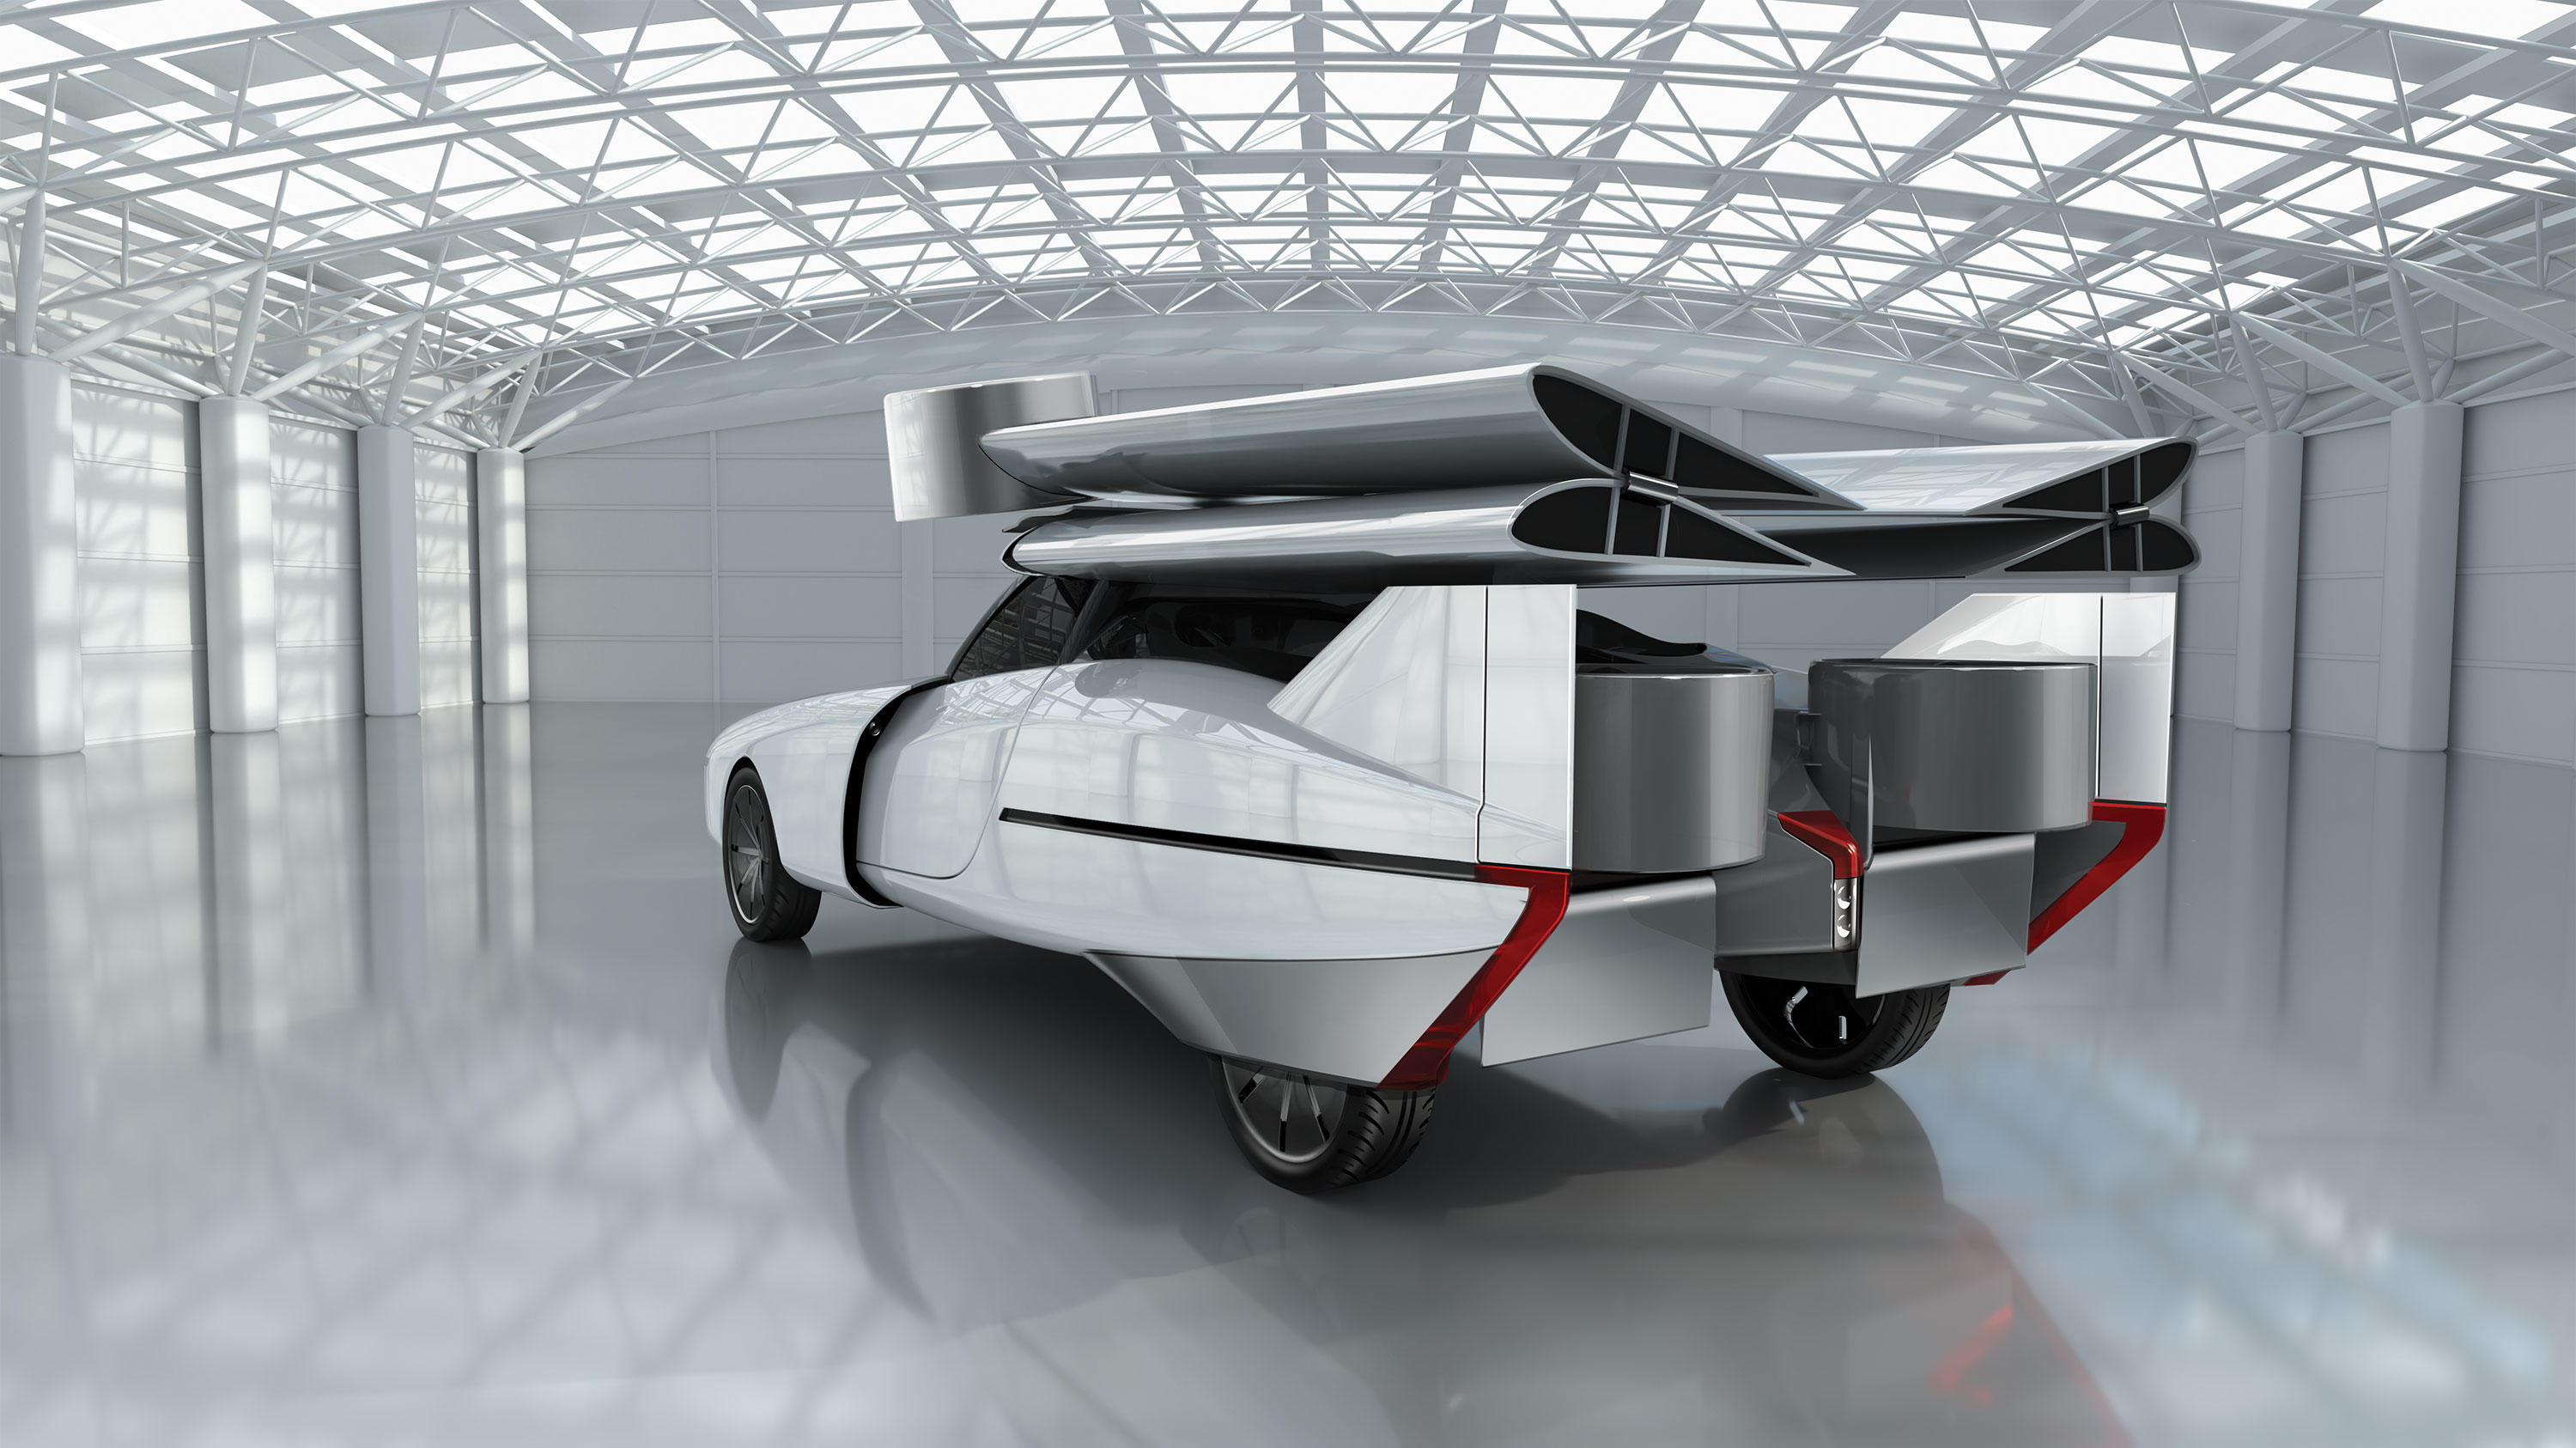 The wings of NFT's Aska flying car will fold up onto the roof when it's time to drive on the road.